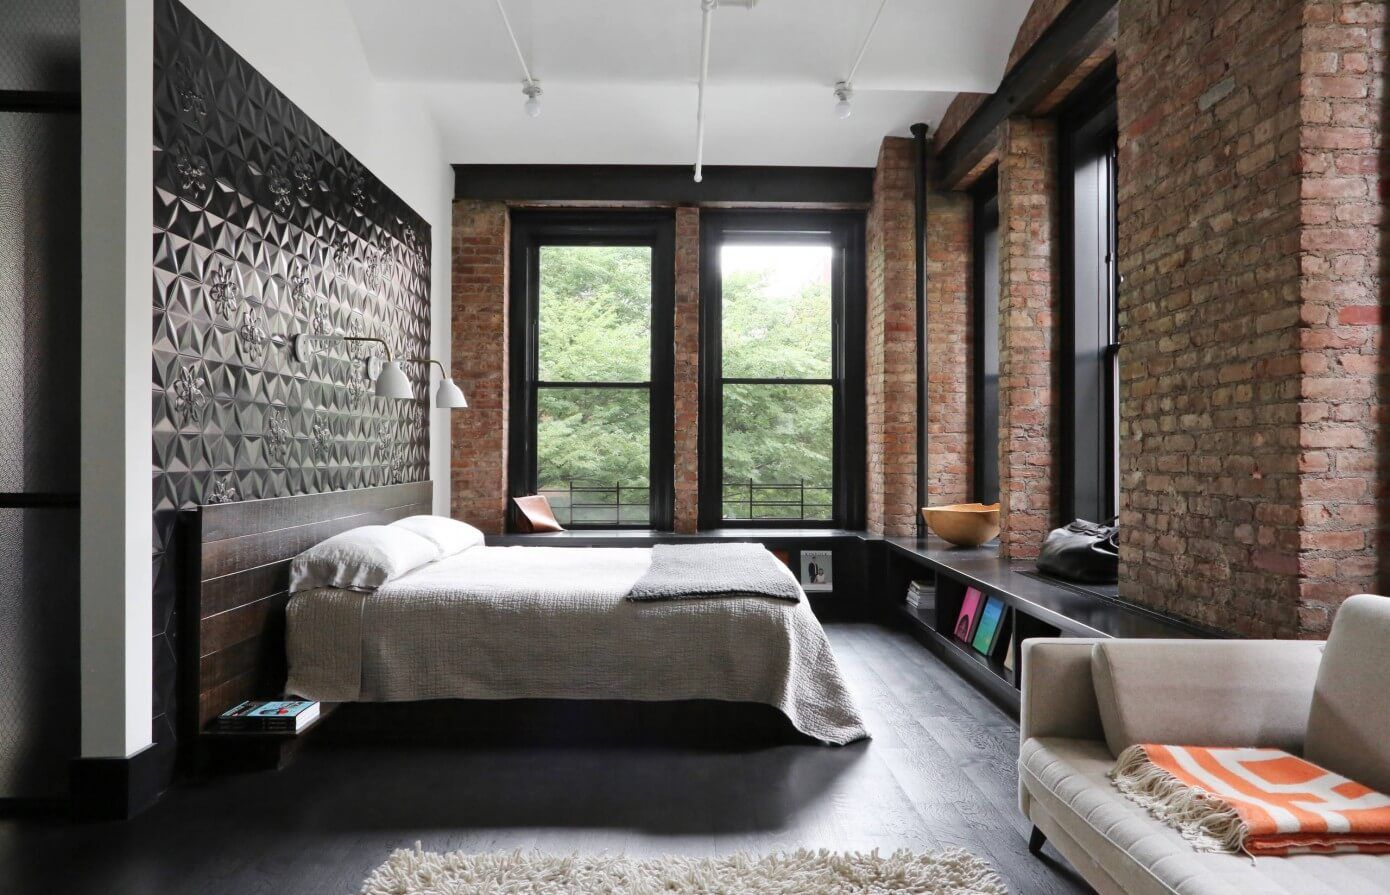 Modern Interior Design Laminate Use. Brickwork and dark accent wall in the loft bedroom